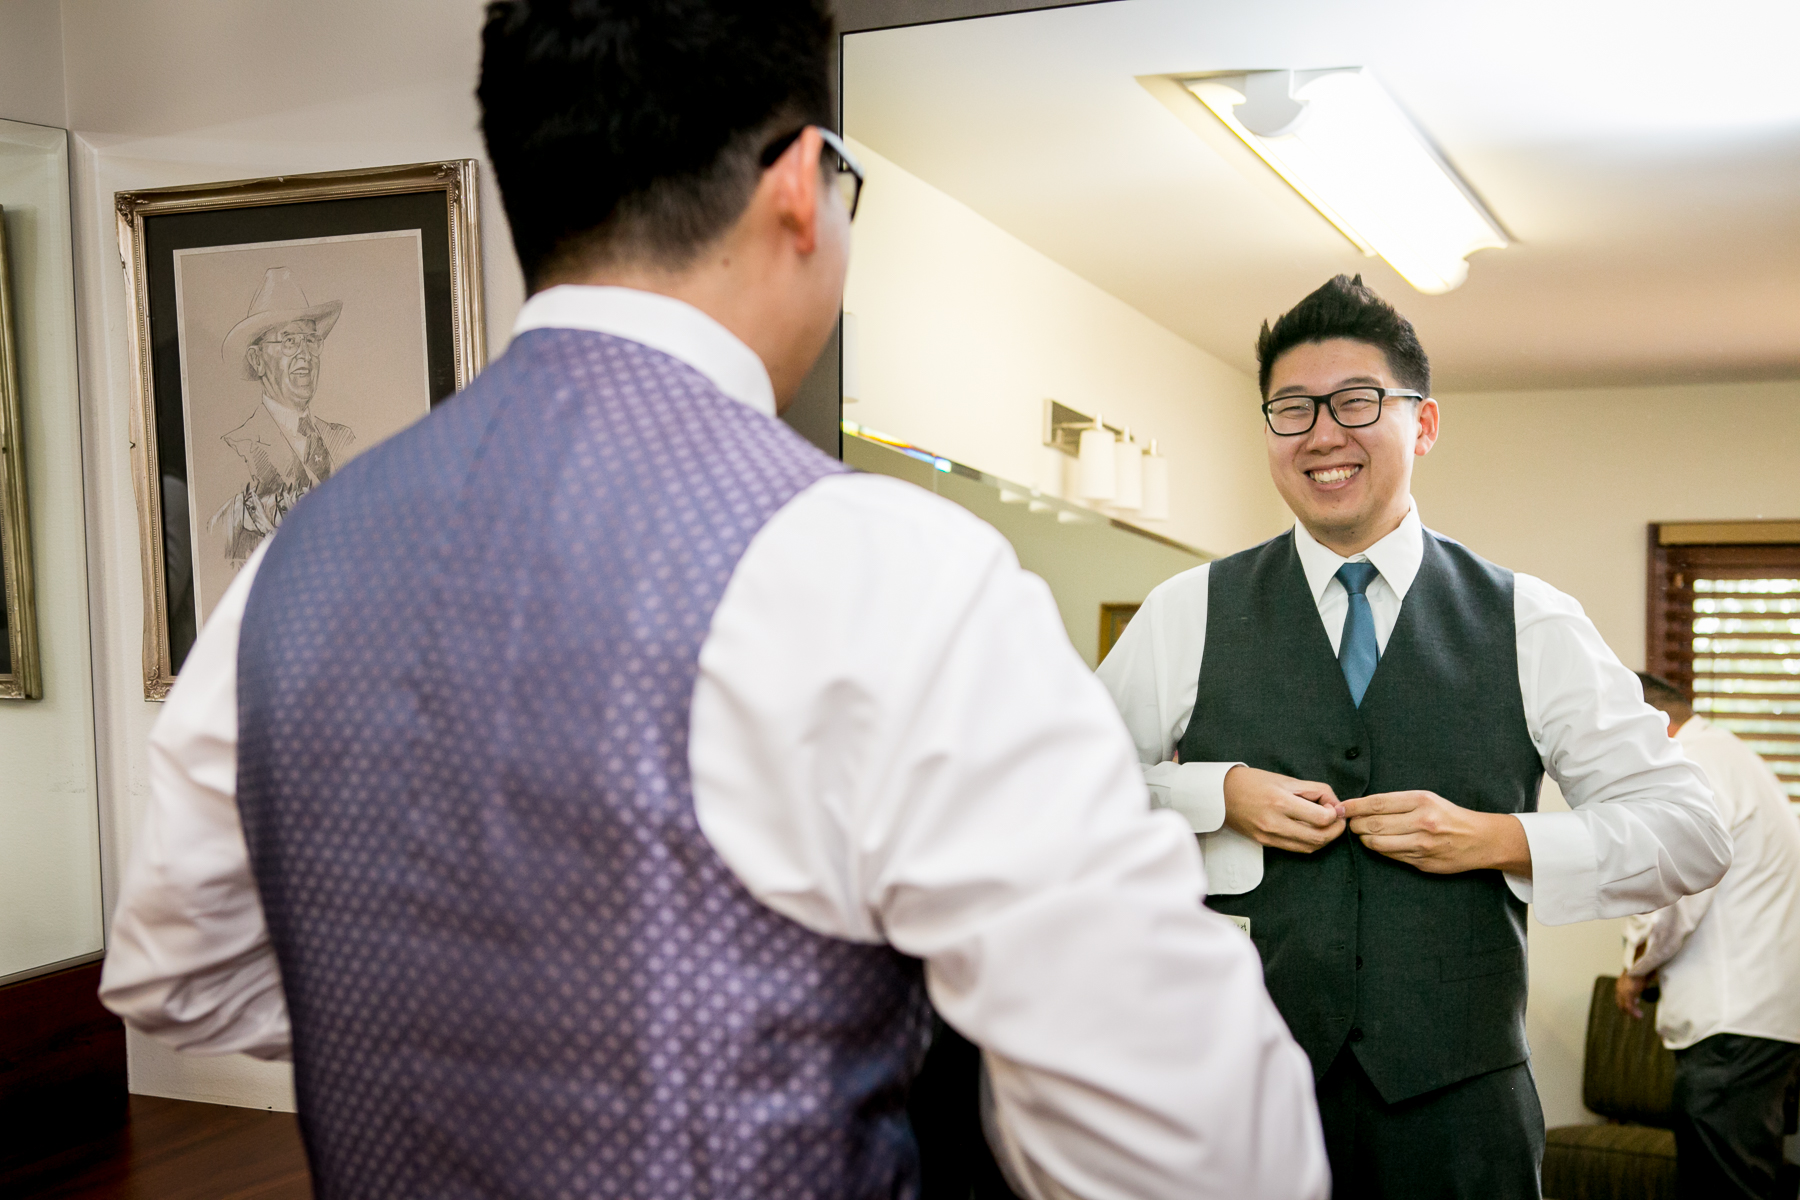 groom buttons vest jacket at getting ready at mccoy chino hills photographer